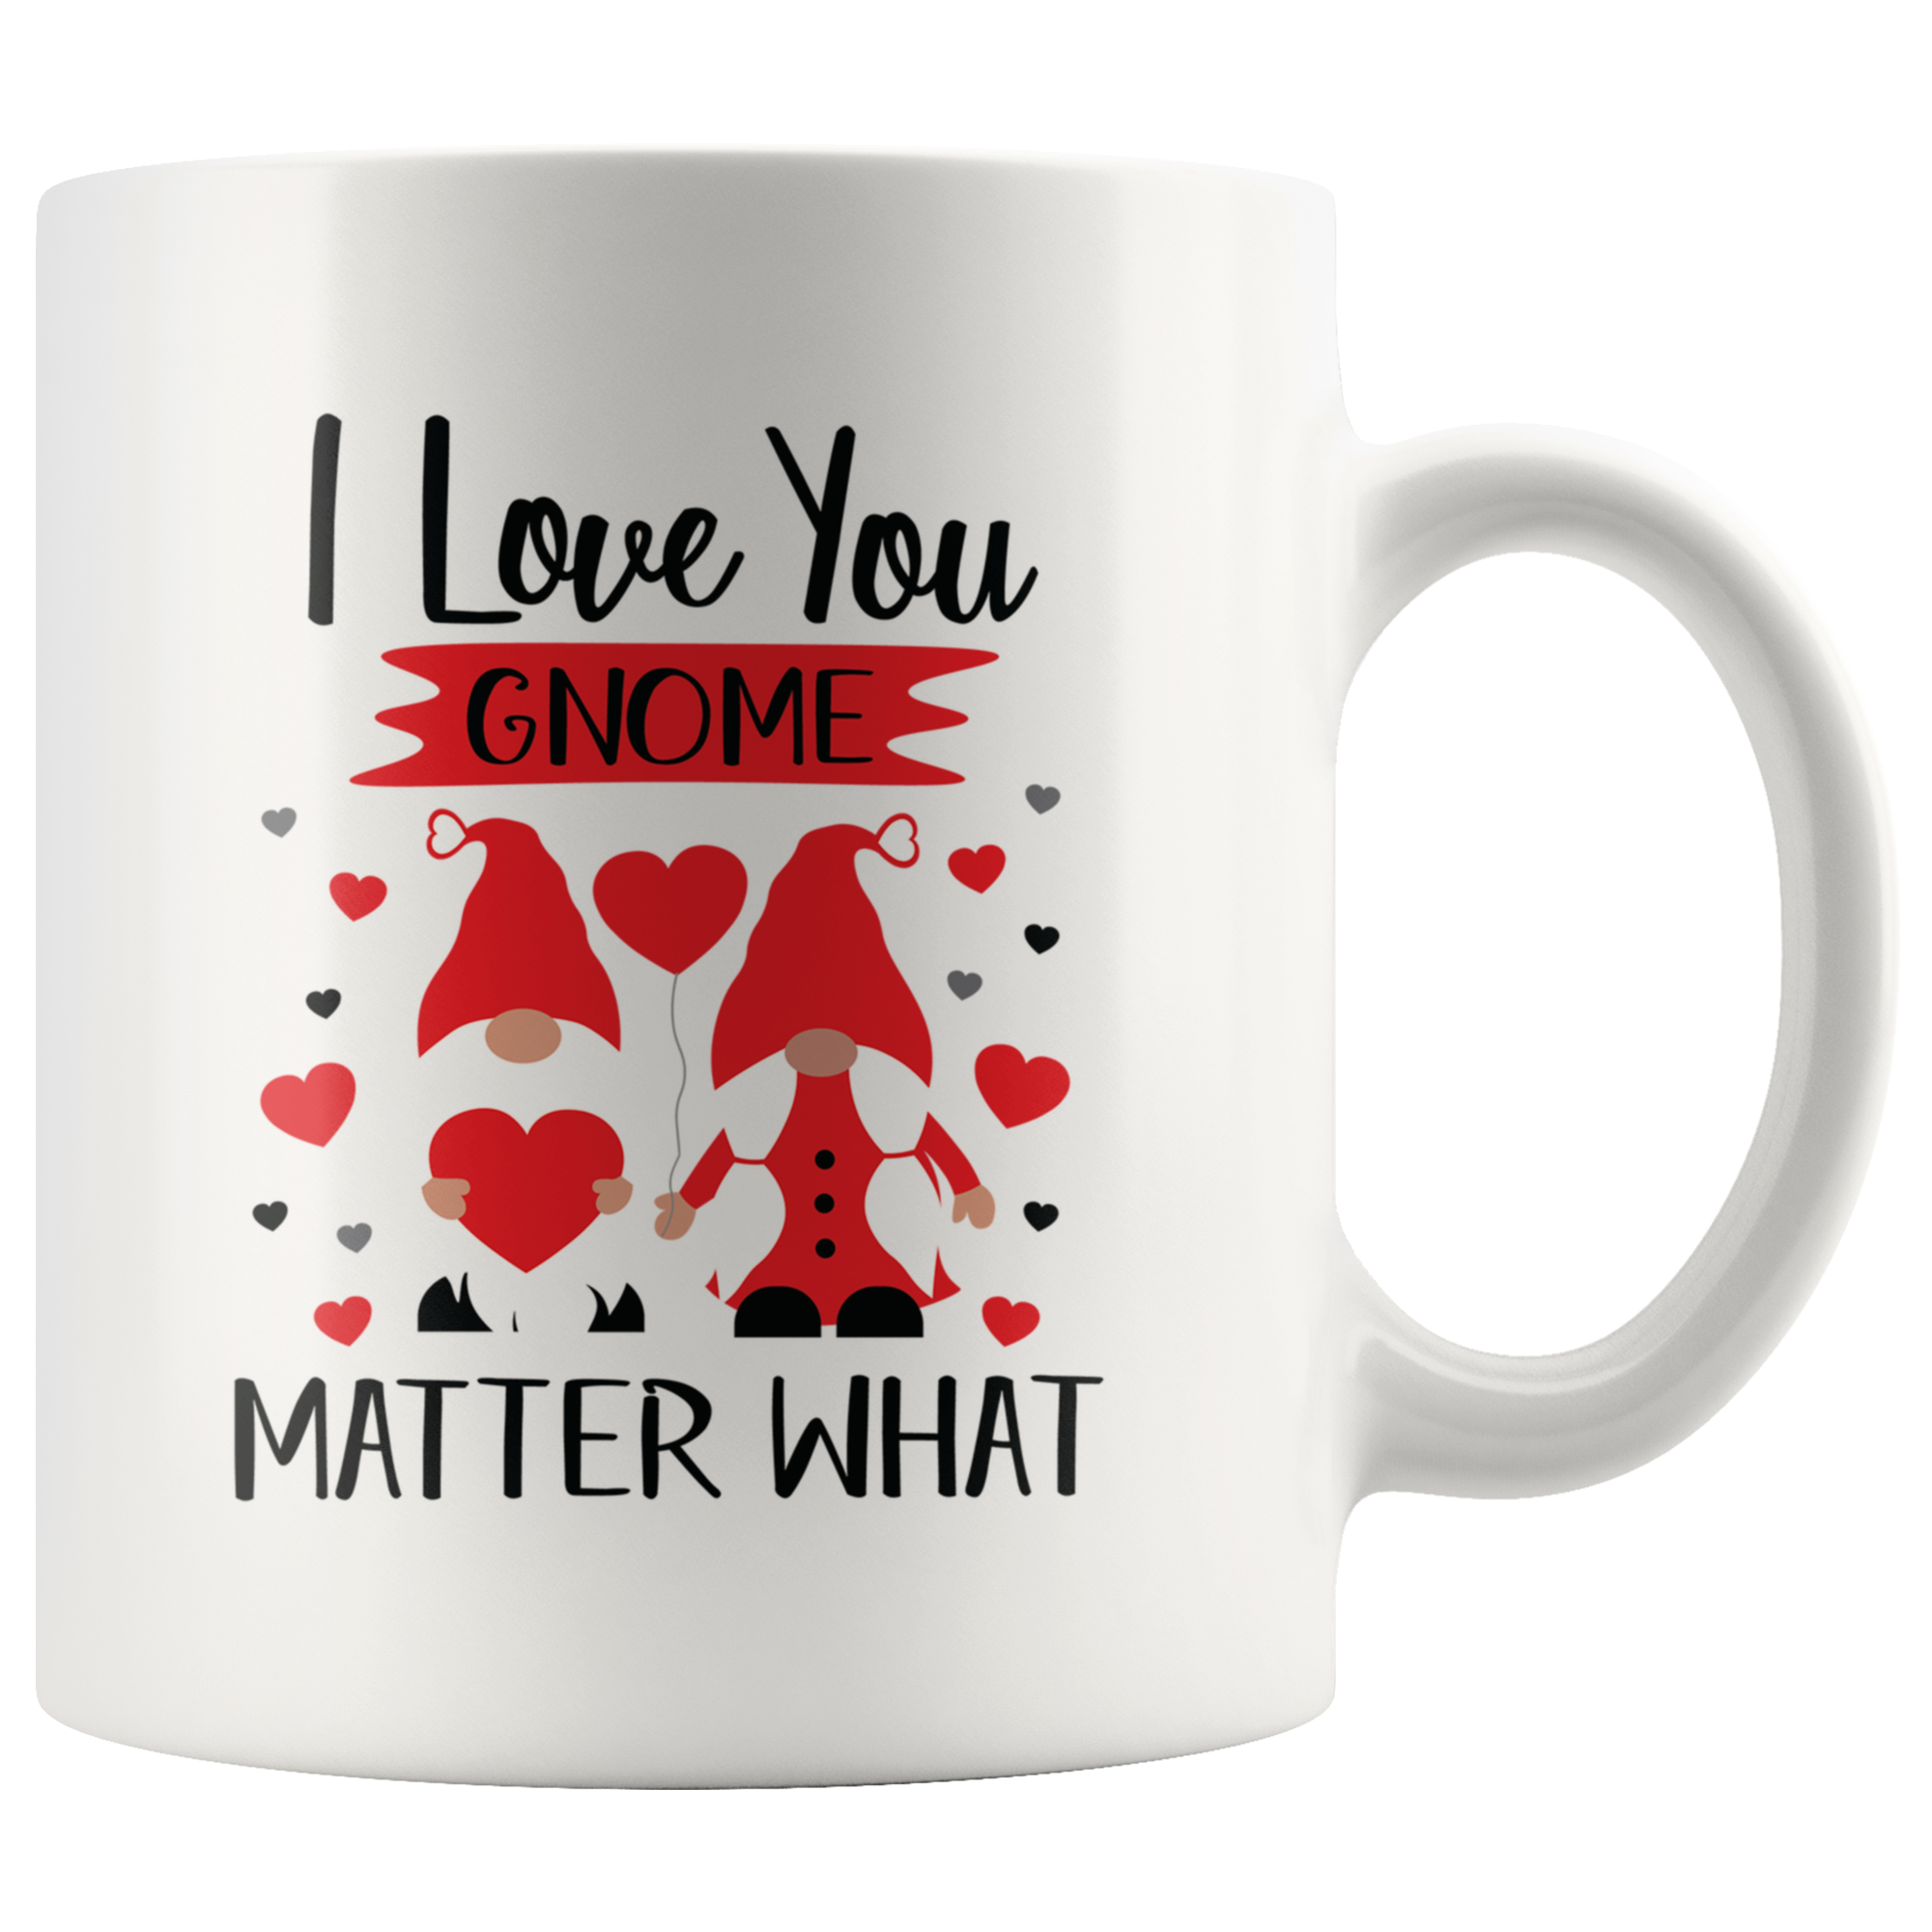 I Love You Gnome Matter What Mug